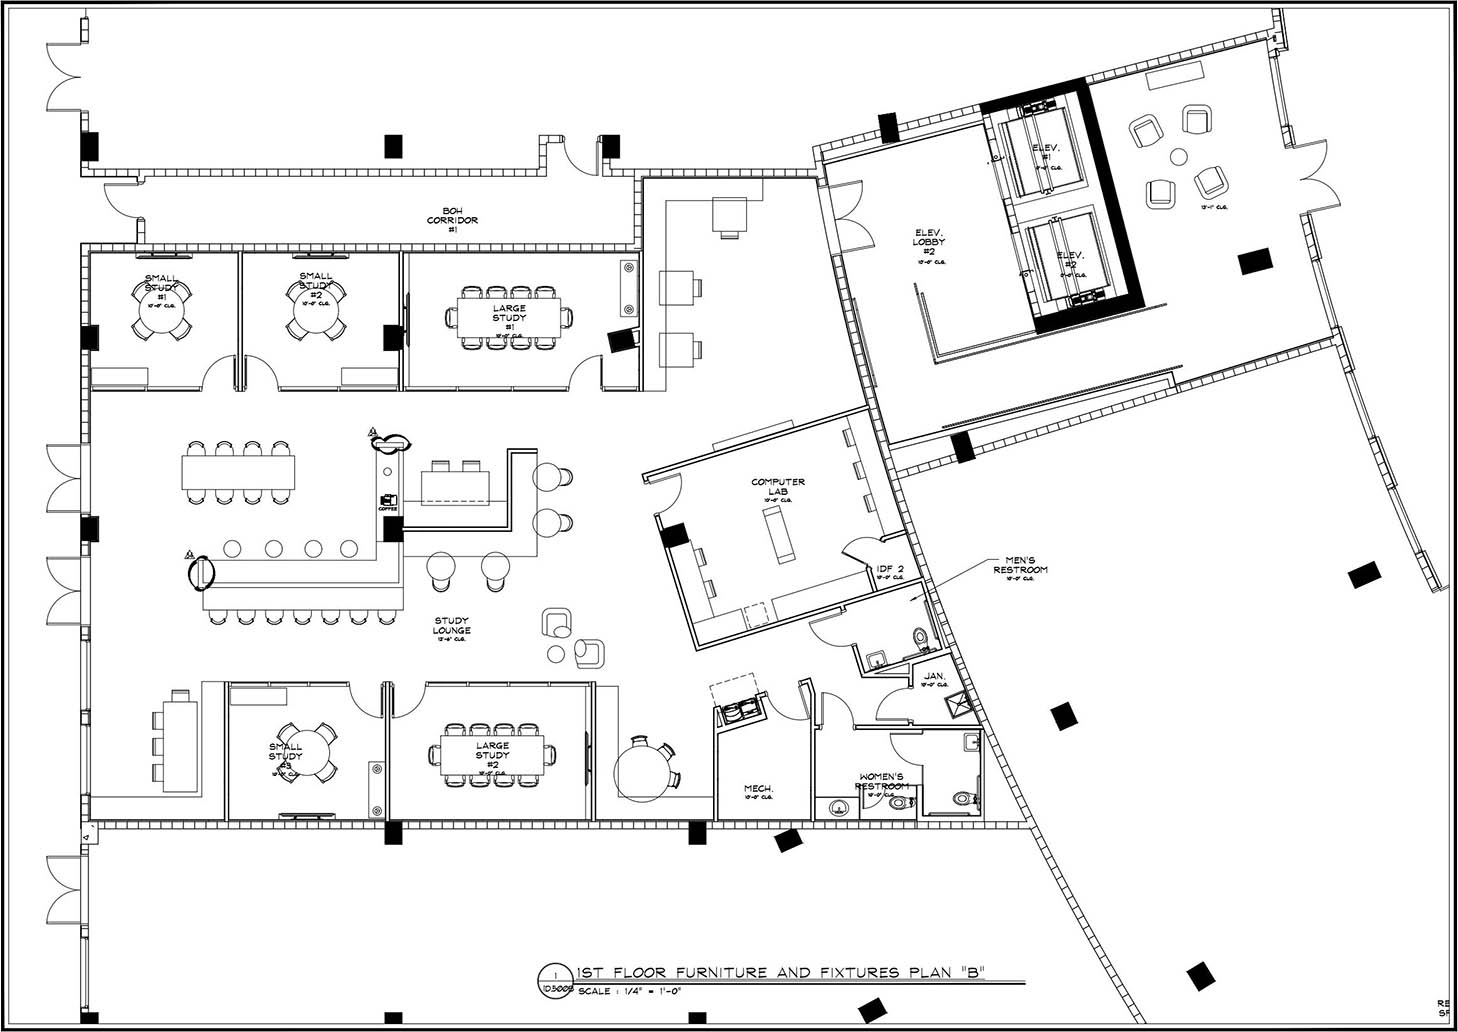 ID furniture fixtures and equipment plan